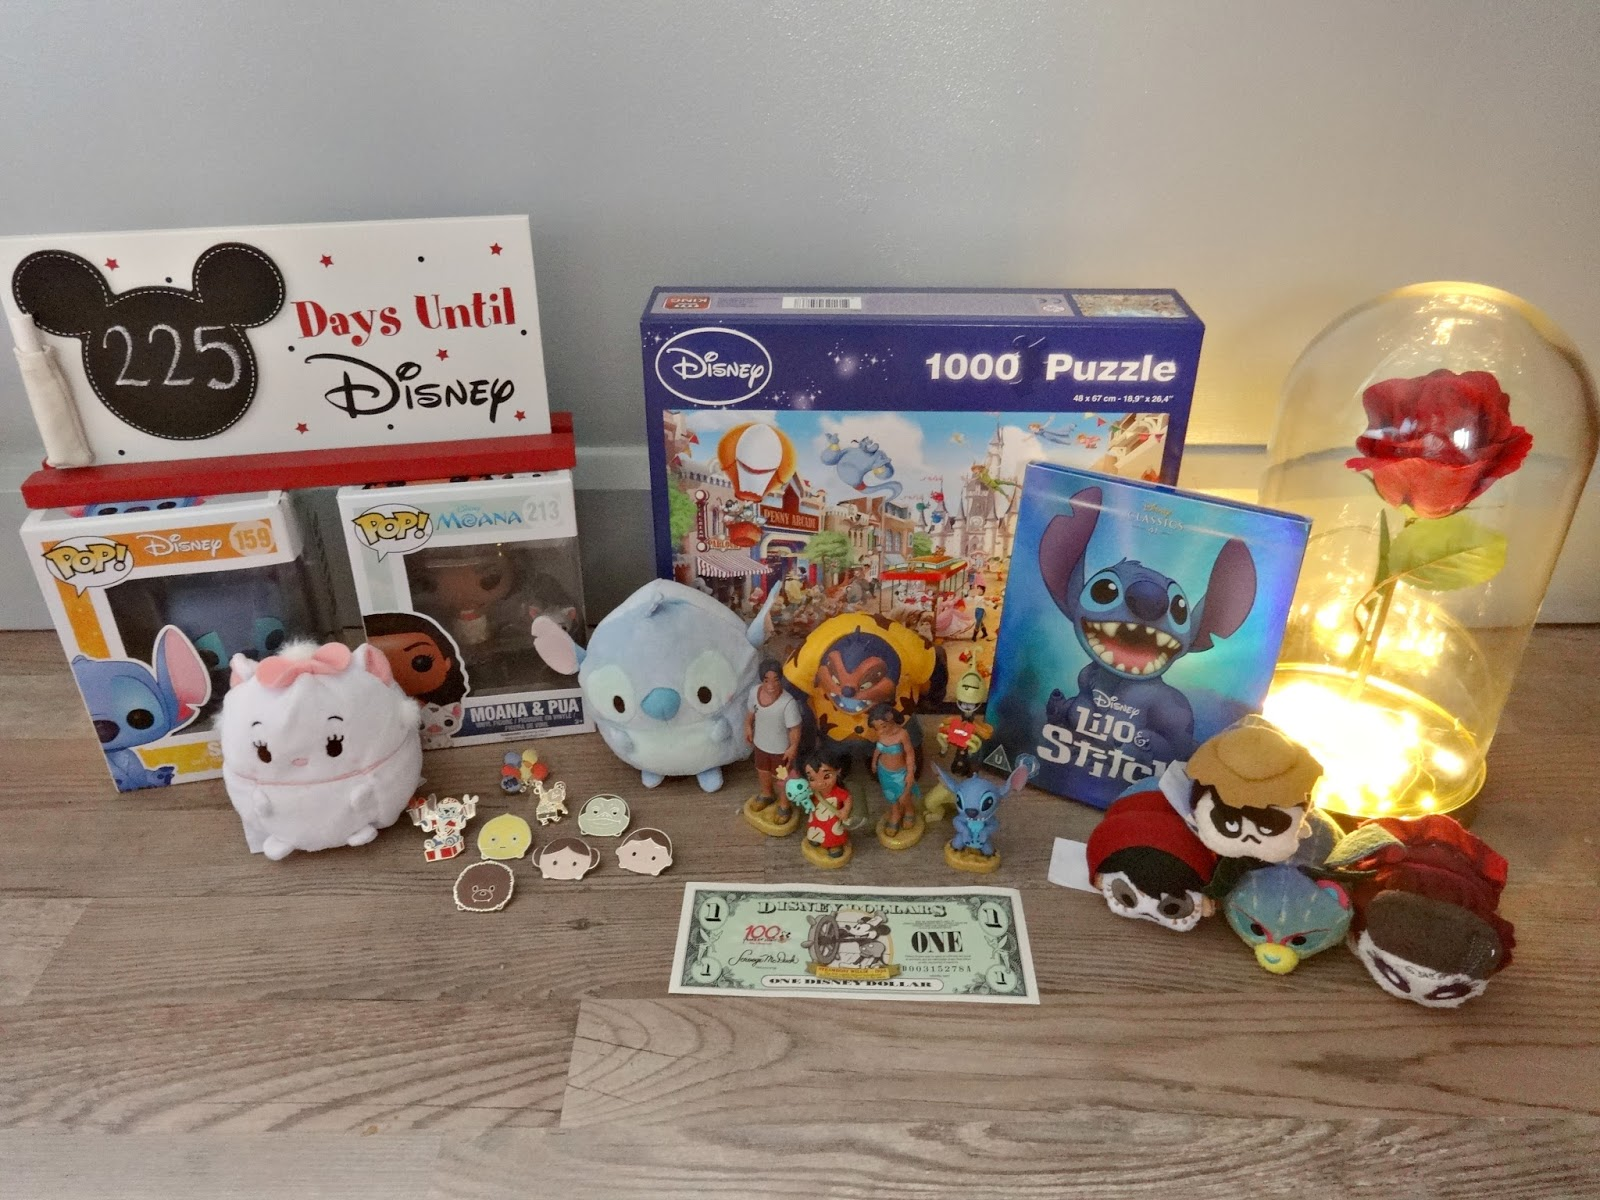 Collective Disney Haul